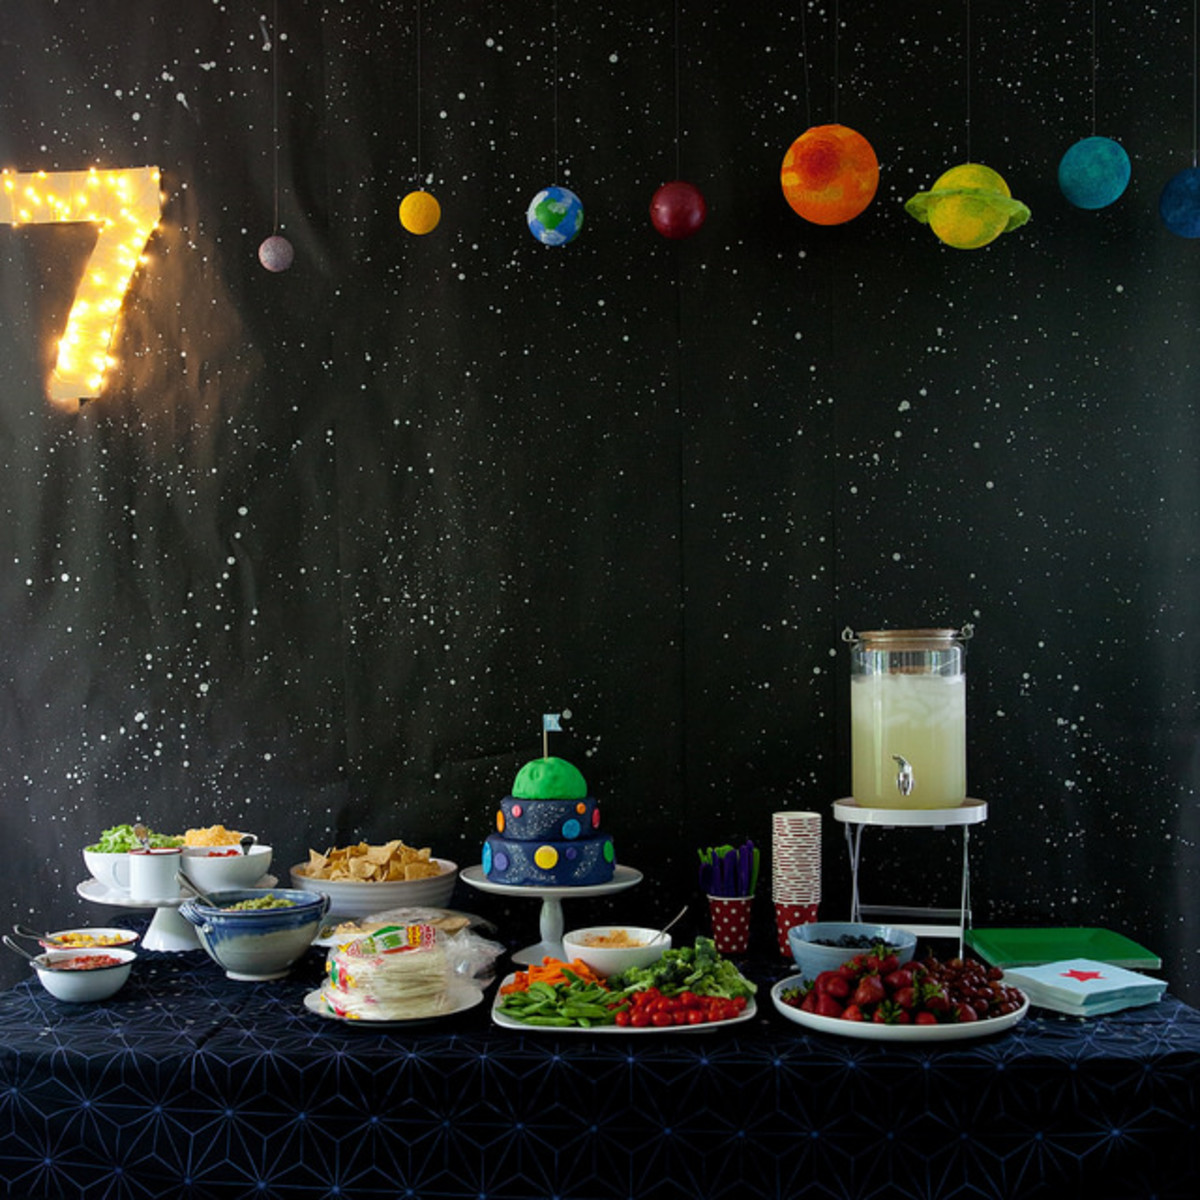 Outer space party table with night sky and planet backdrop and a delicious array of Space theme party food.